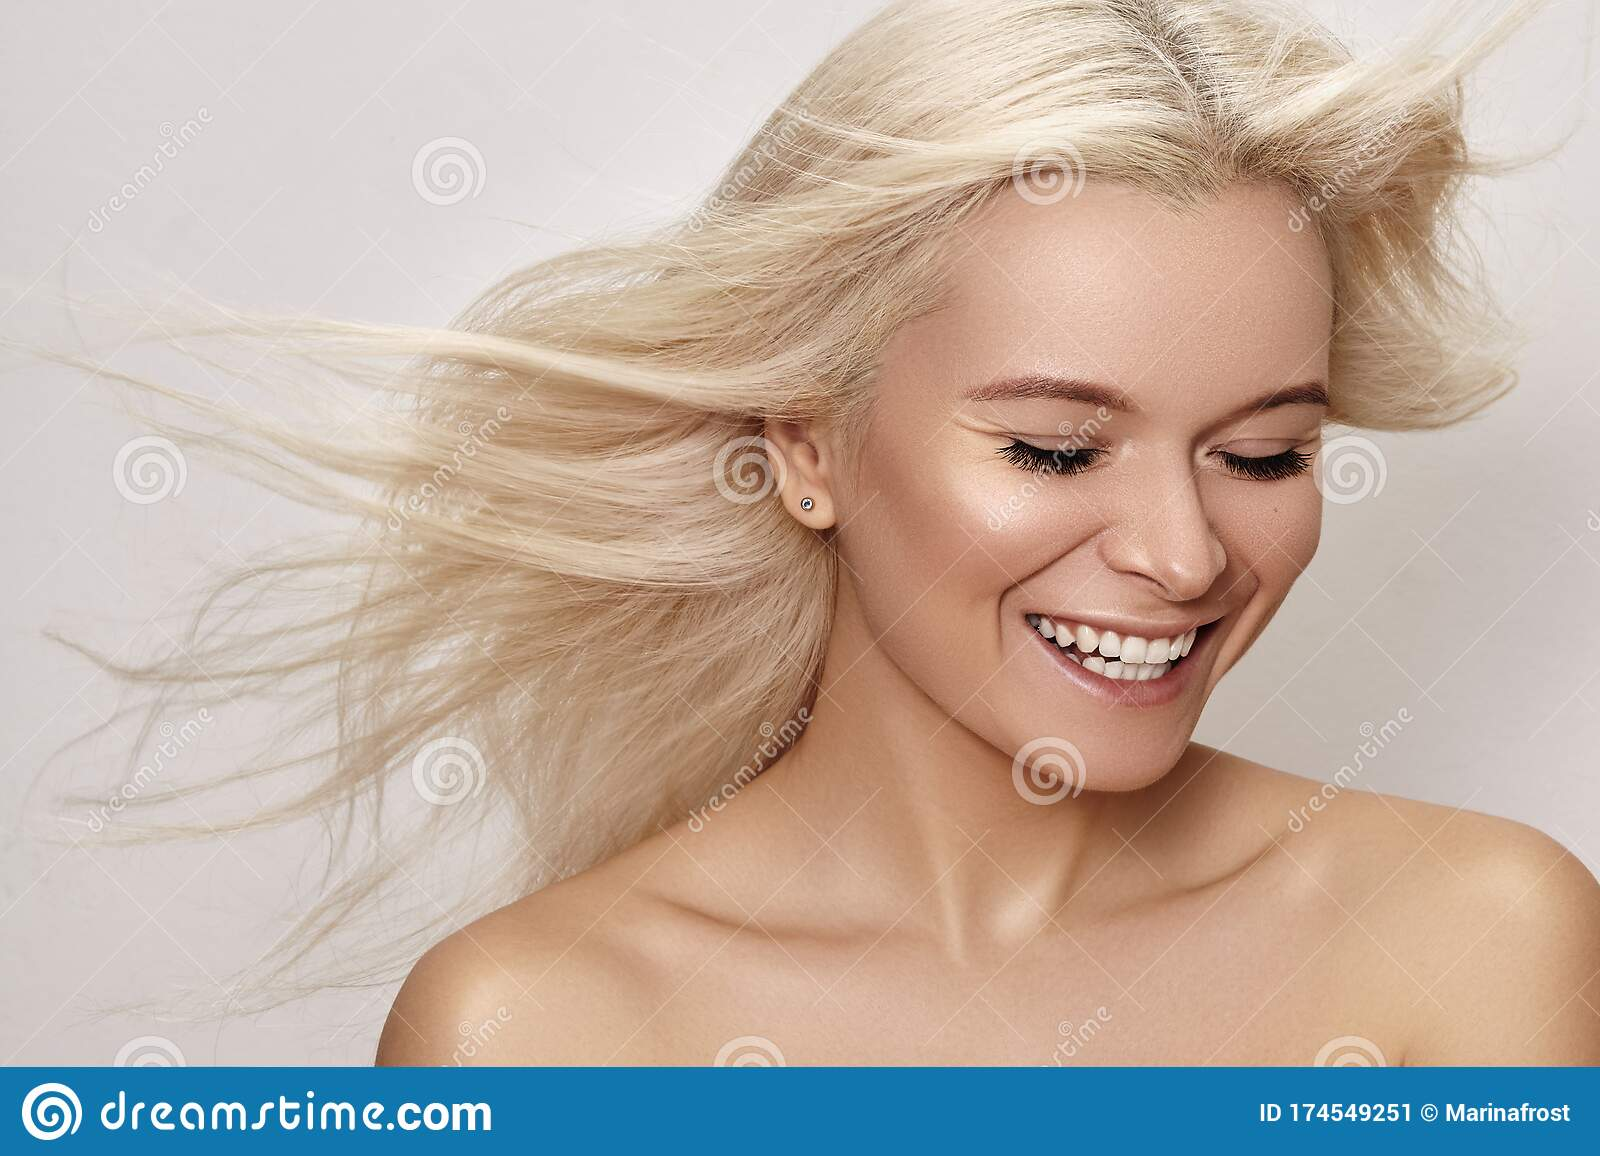 Beautiful Smiling Woman With Magnificent Blond Hair Happy Model With Windswept Flying Hair Shiny Long Health Hairstyle Stock Image Image Of Clean Clear 174549251